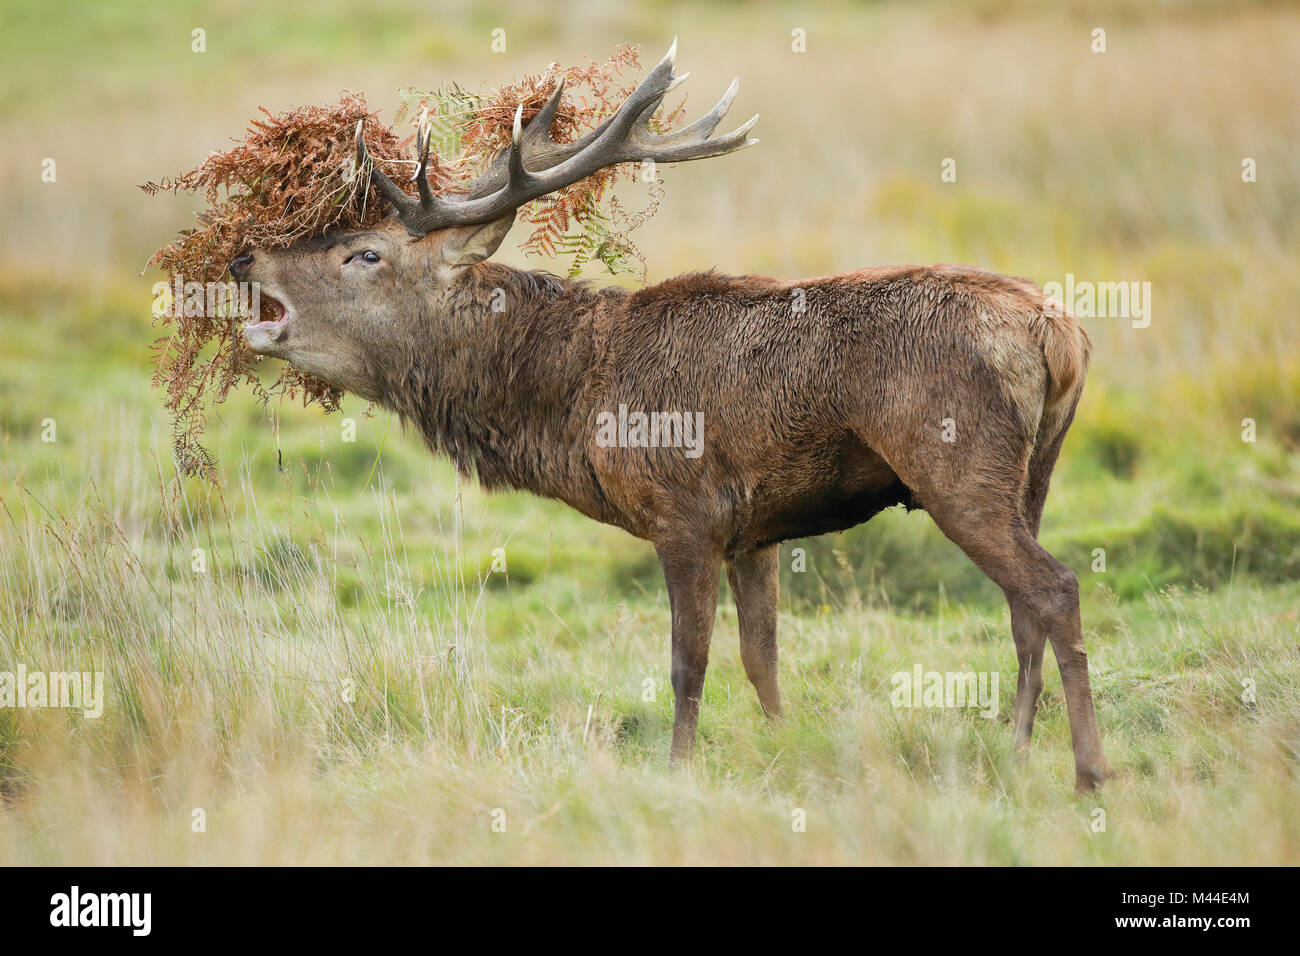 Stag Head Stock Photos & Stag Head Stock Images - Alamy